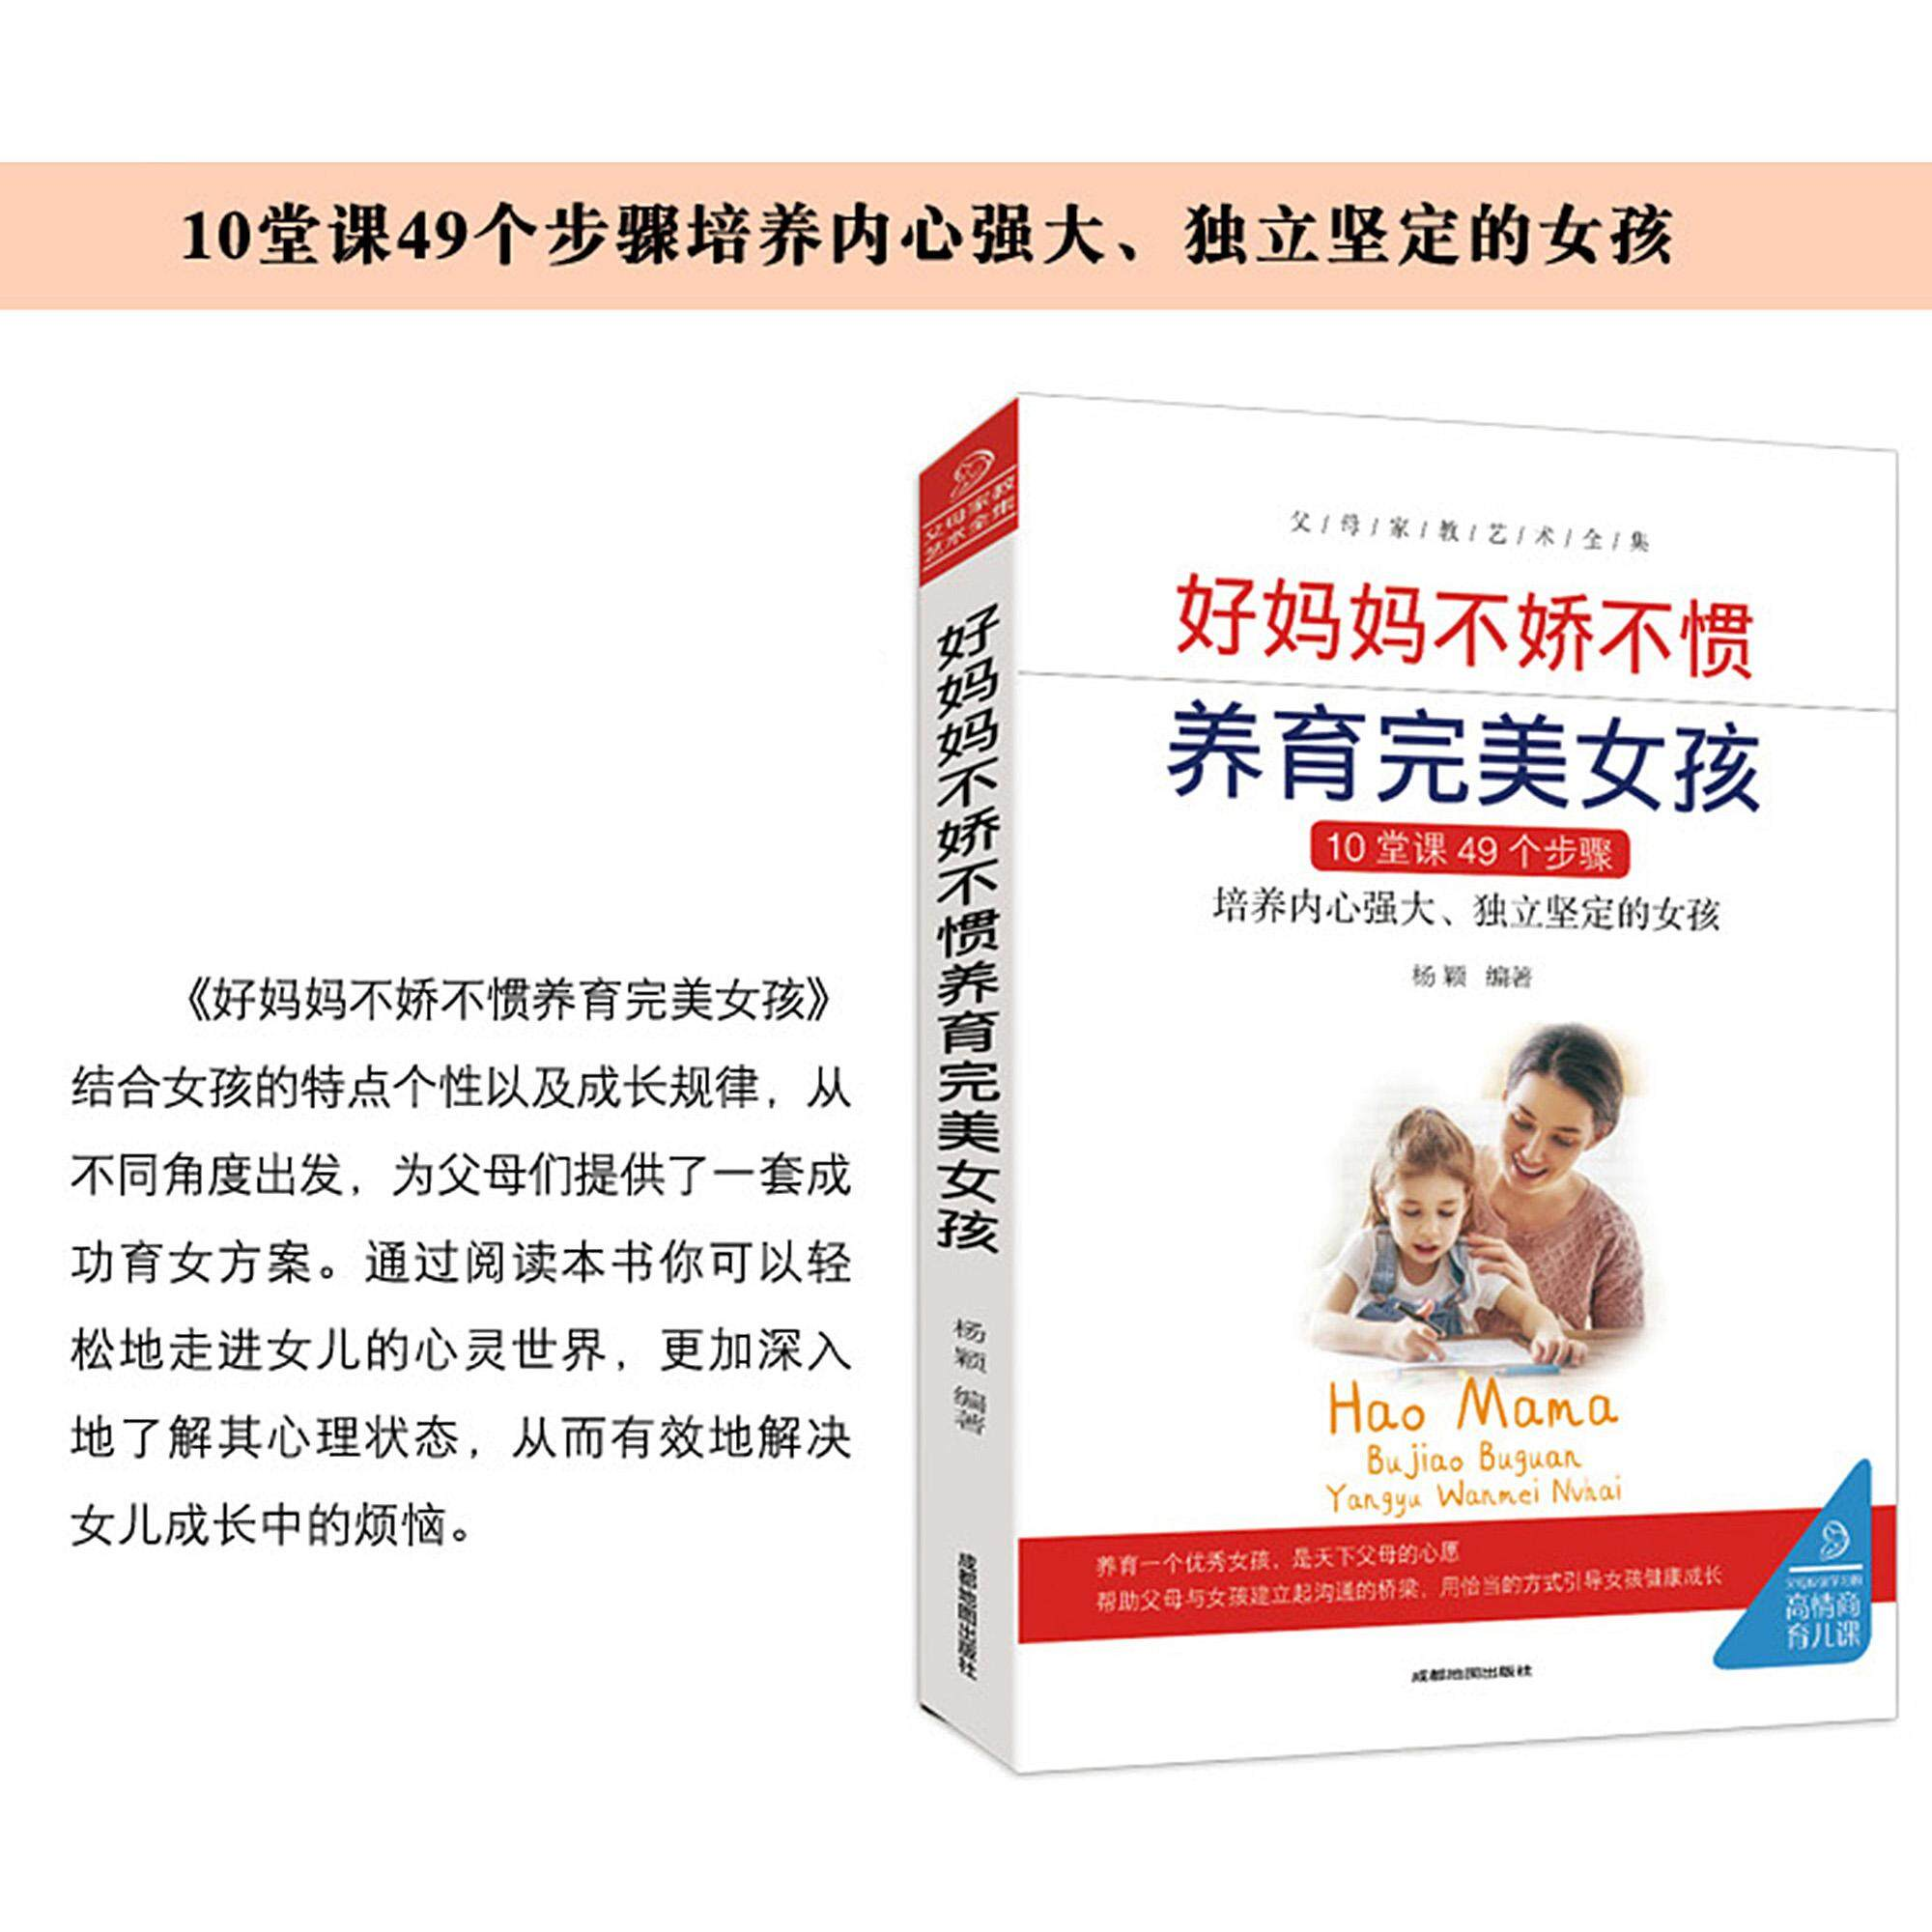 [Promo] How Parents Can Raise a Good Child 3 Books_Series 3 ( + + )